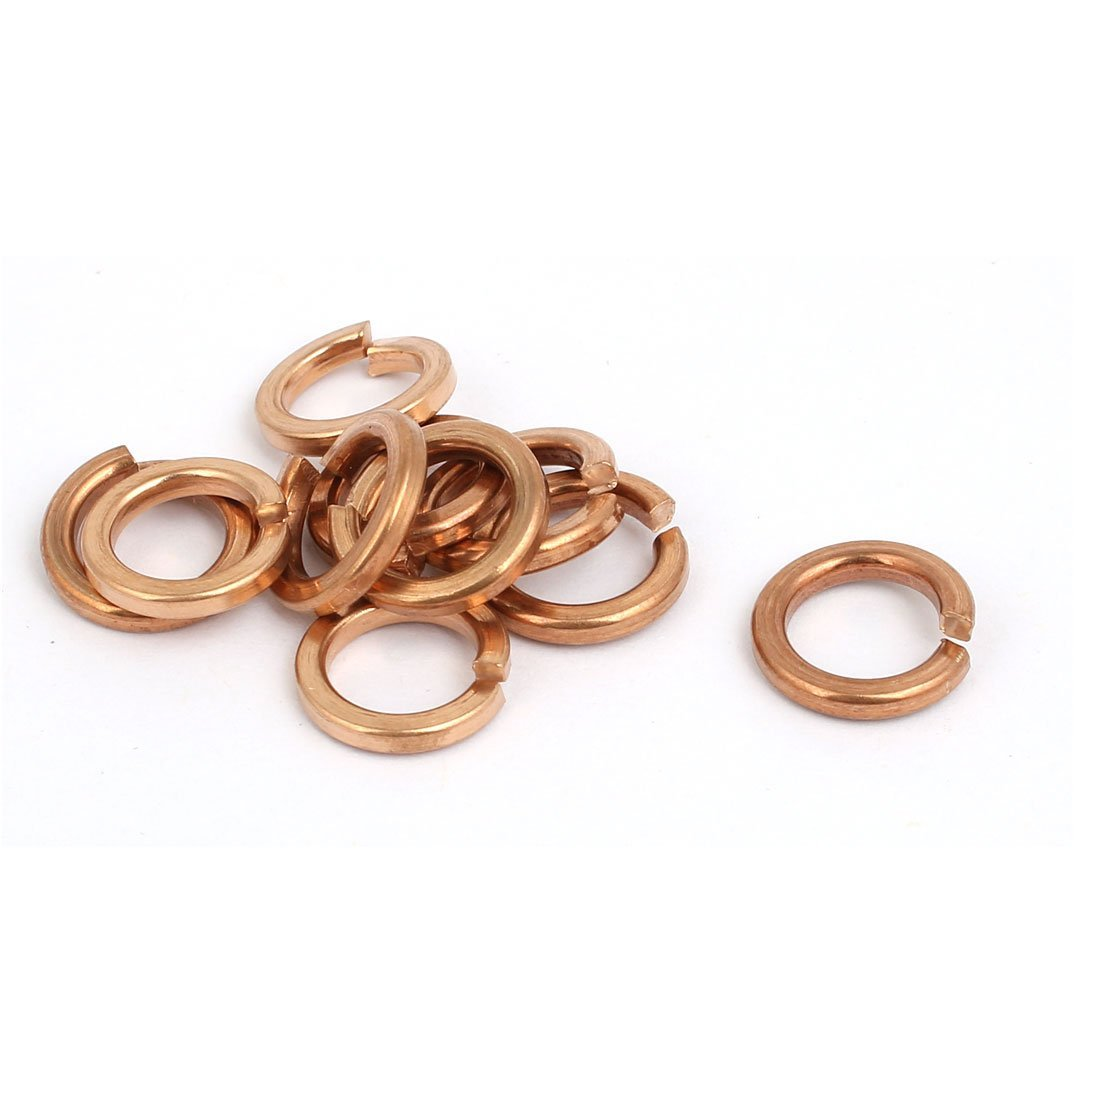 uxcell 8mm Inner Diameter Split Lock Spring Washer Gasket Copper Tone 10pcs